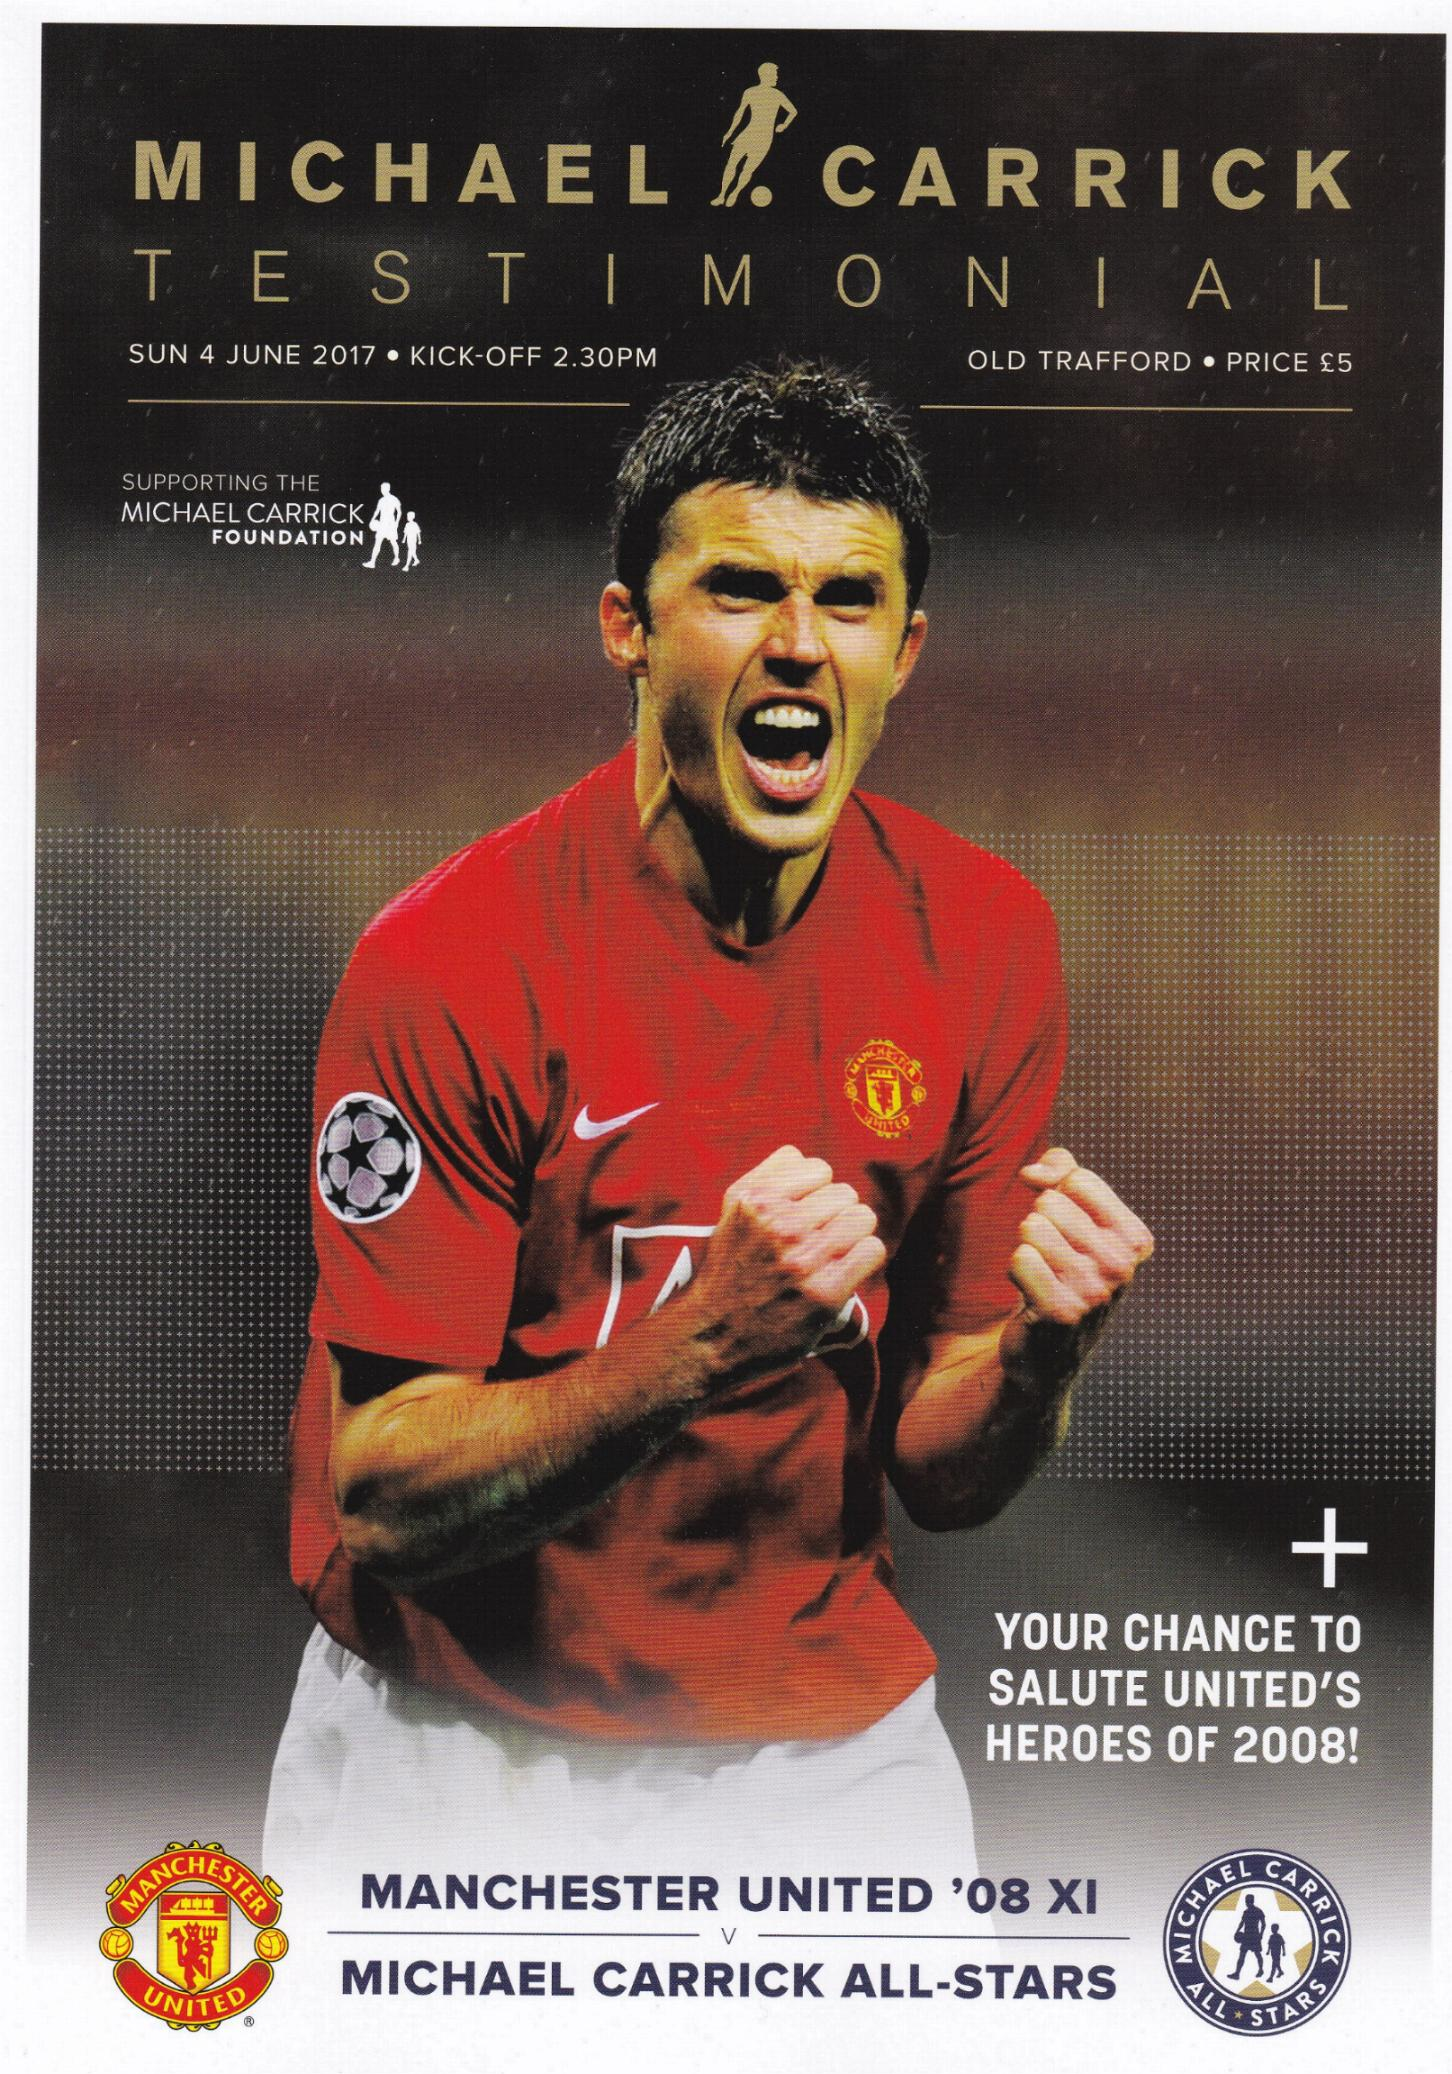 2017 - MICHAEL CARRICK TESTIMONIAL - MAN UTD v ALL STARS